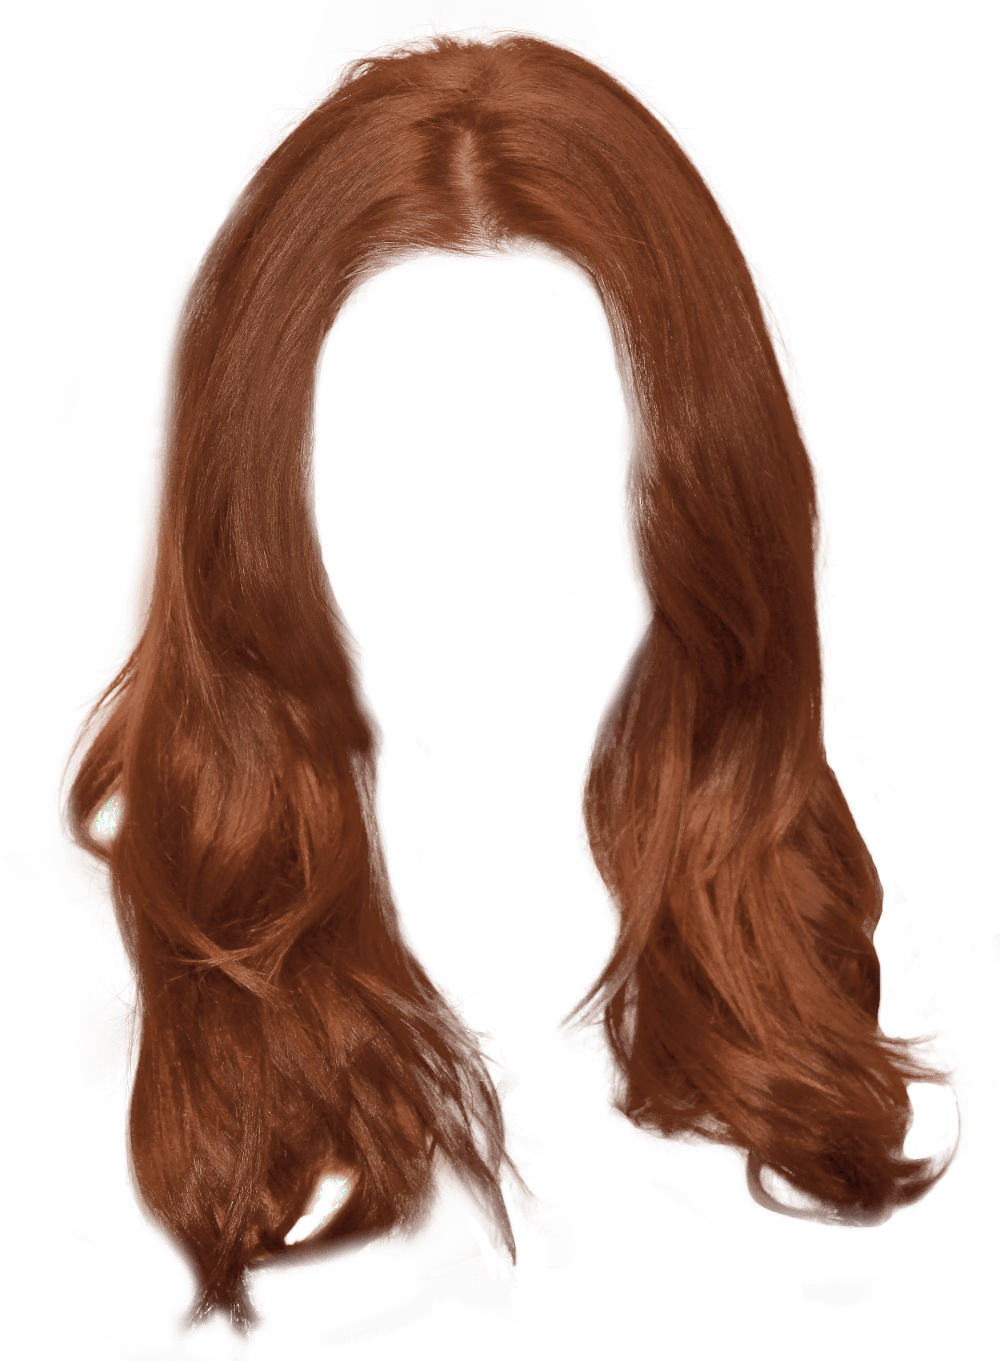 Haircut clipart frizzy hair.  women png image